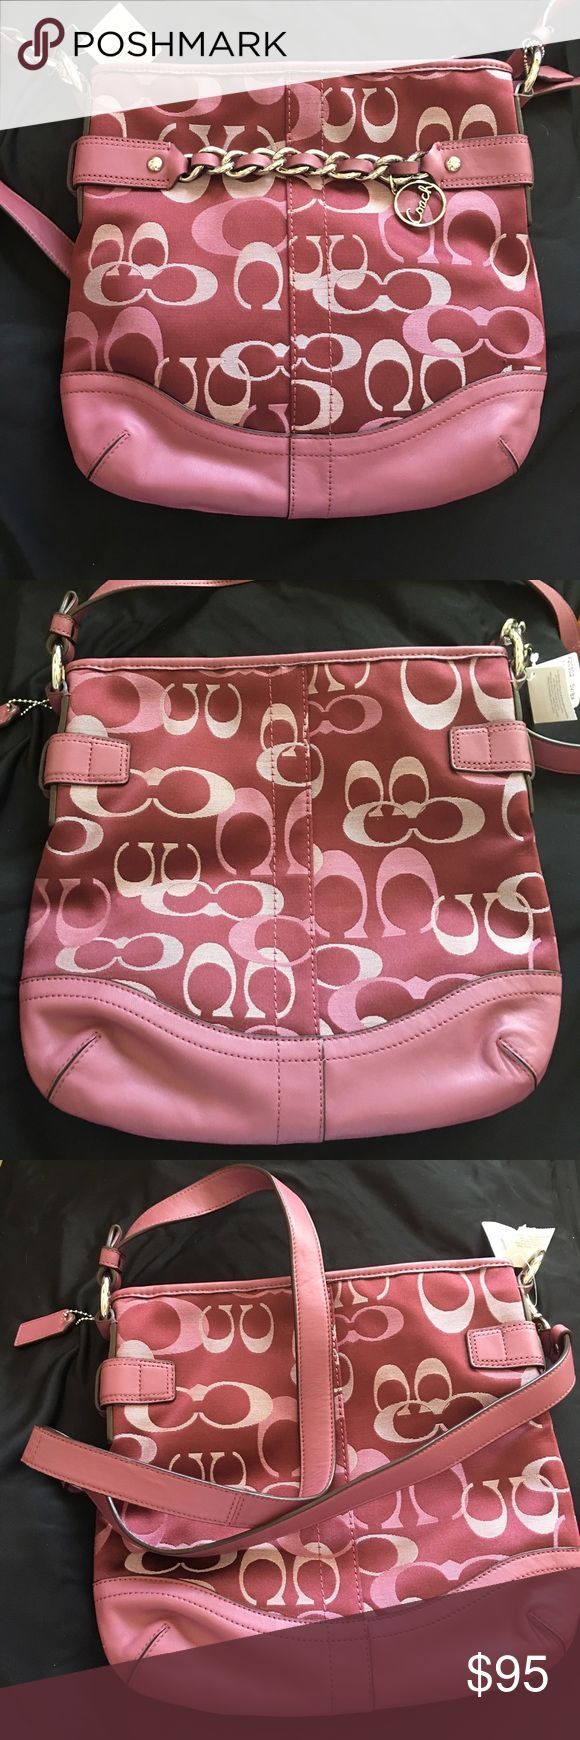 Brand new coach handbag Authentic brand new coach bag-please see picture small pull on material Coach Bags Crossbody Bags